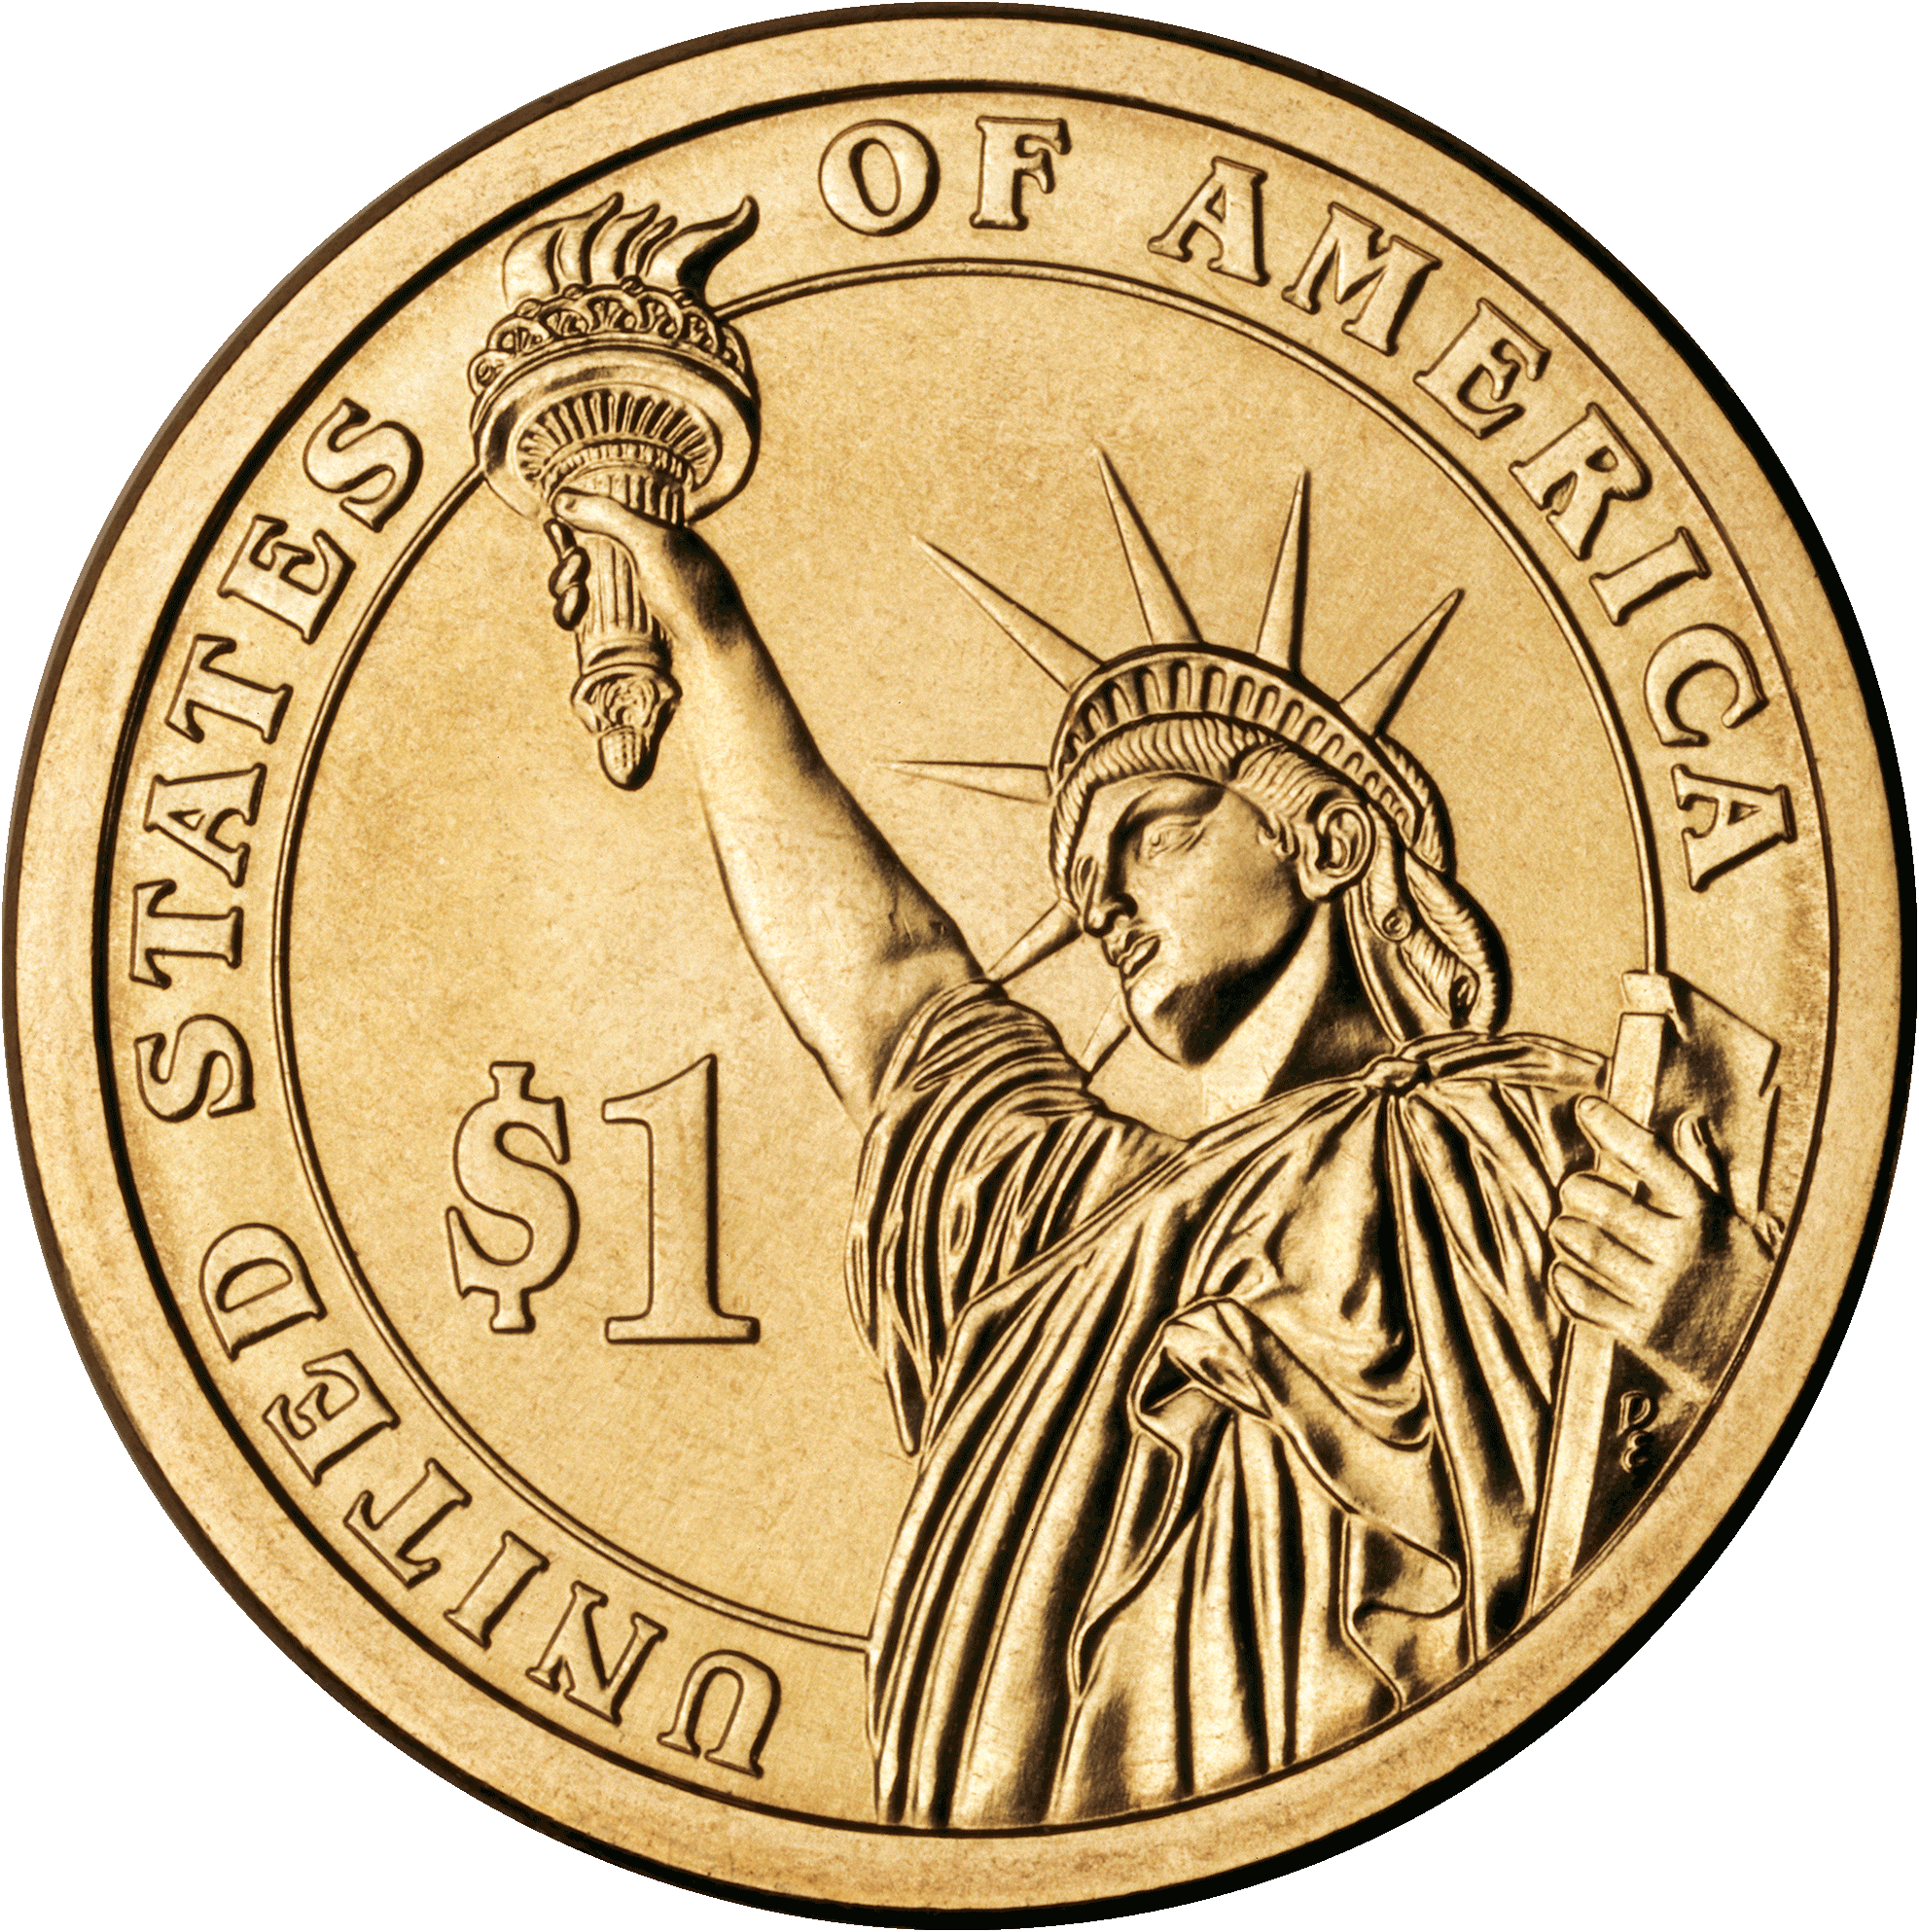 Gold coin png image. Coins clipart money change